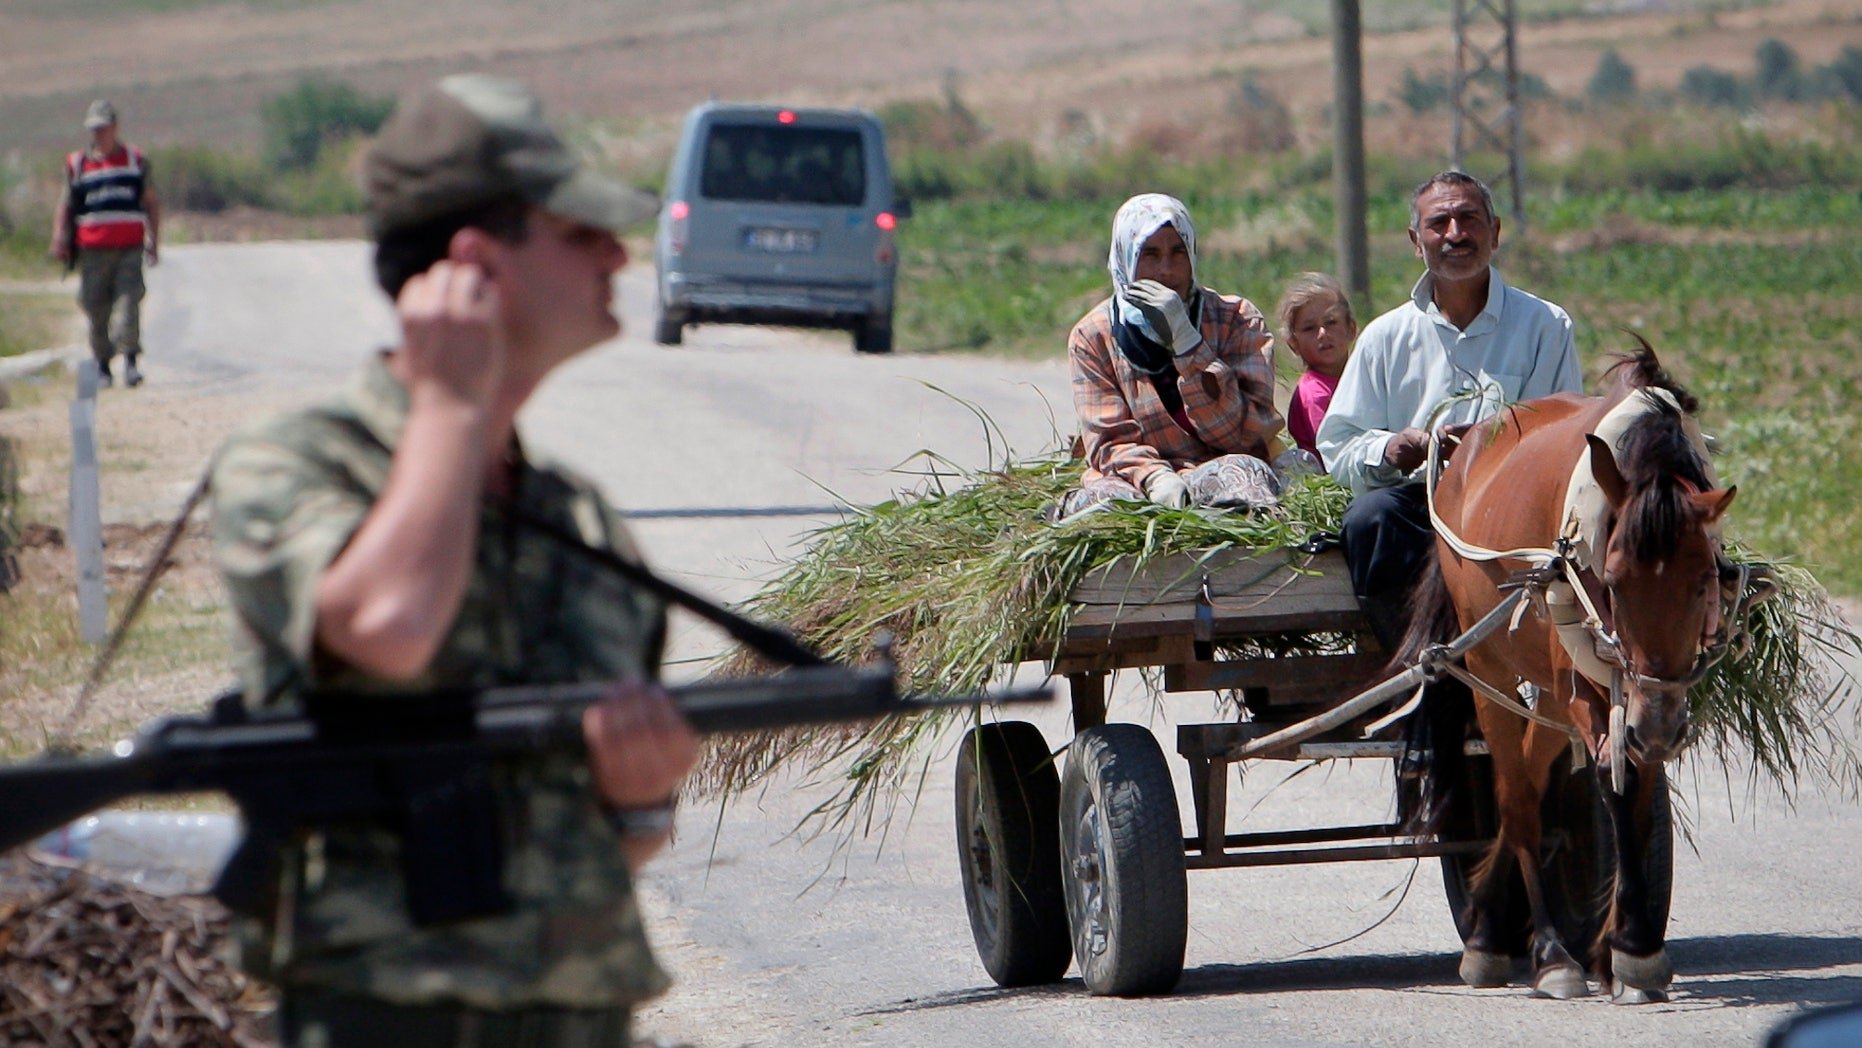 A Turkish family rides on a cart near Turkish soldiers guarding a Syrian refugee a camp, during a brief visit organized by Turkish authorities for the media, in Boynuyogun, Turkey, Saturday, June 18, 2011. According to Turkish authorities more than 10,000 Syrians are now in refugee camps in the Hatay province, near Turkey's border with Syria.